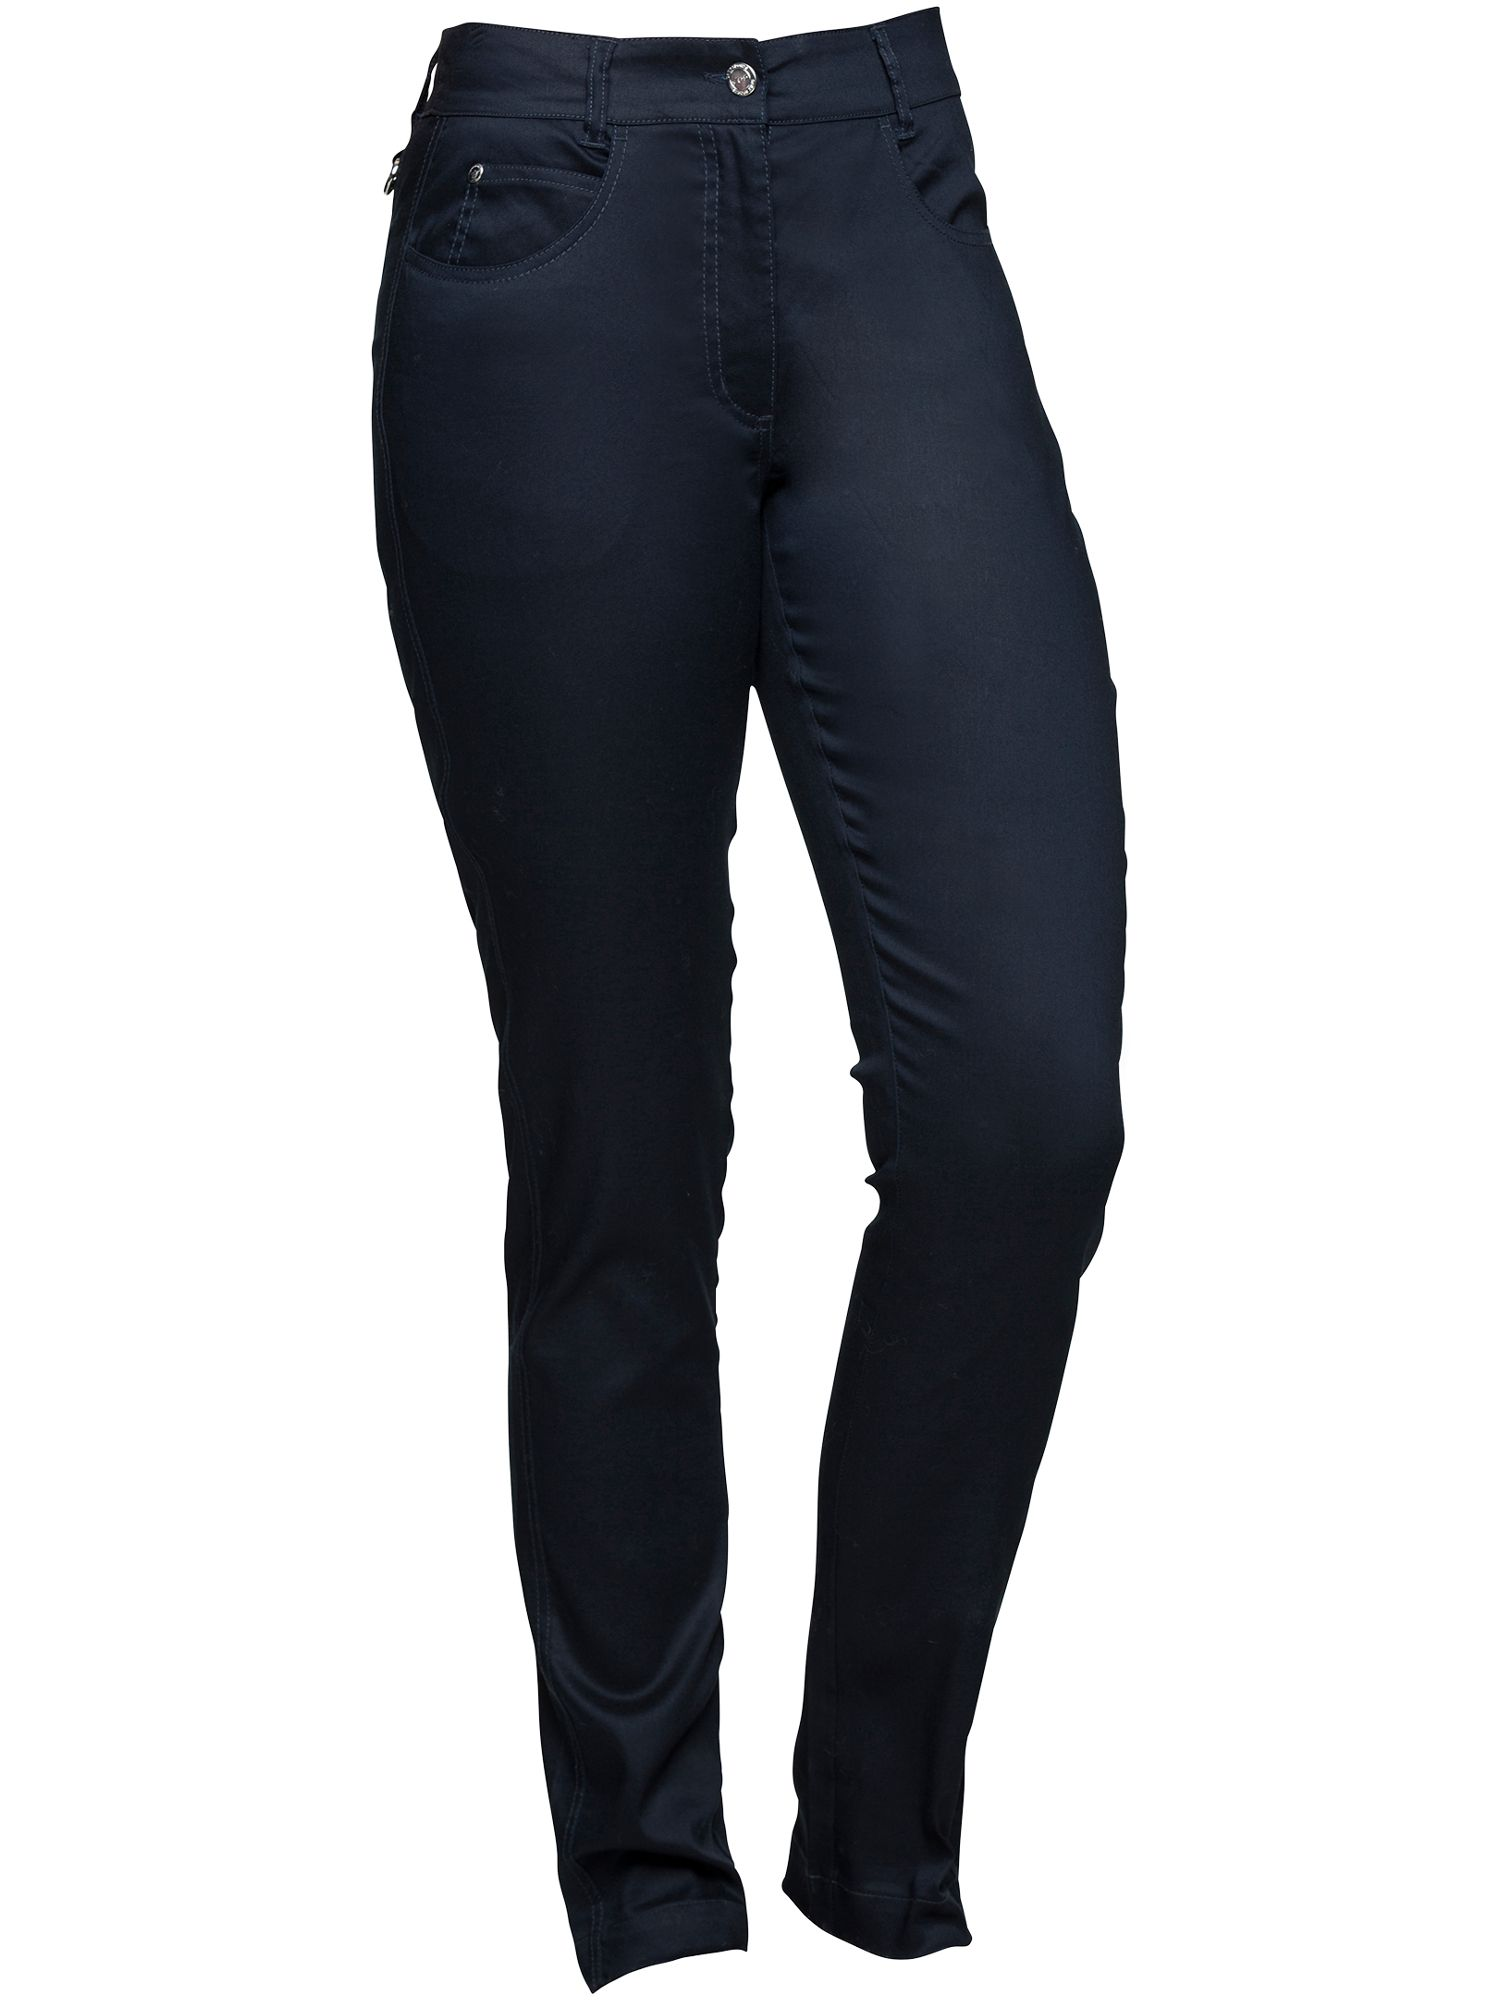 Daily Sports Swing trousers, Blue